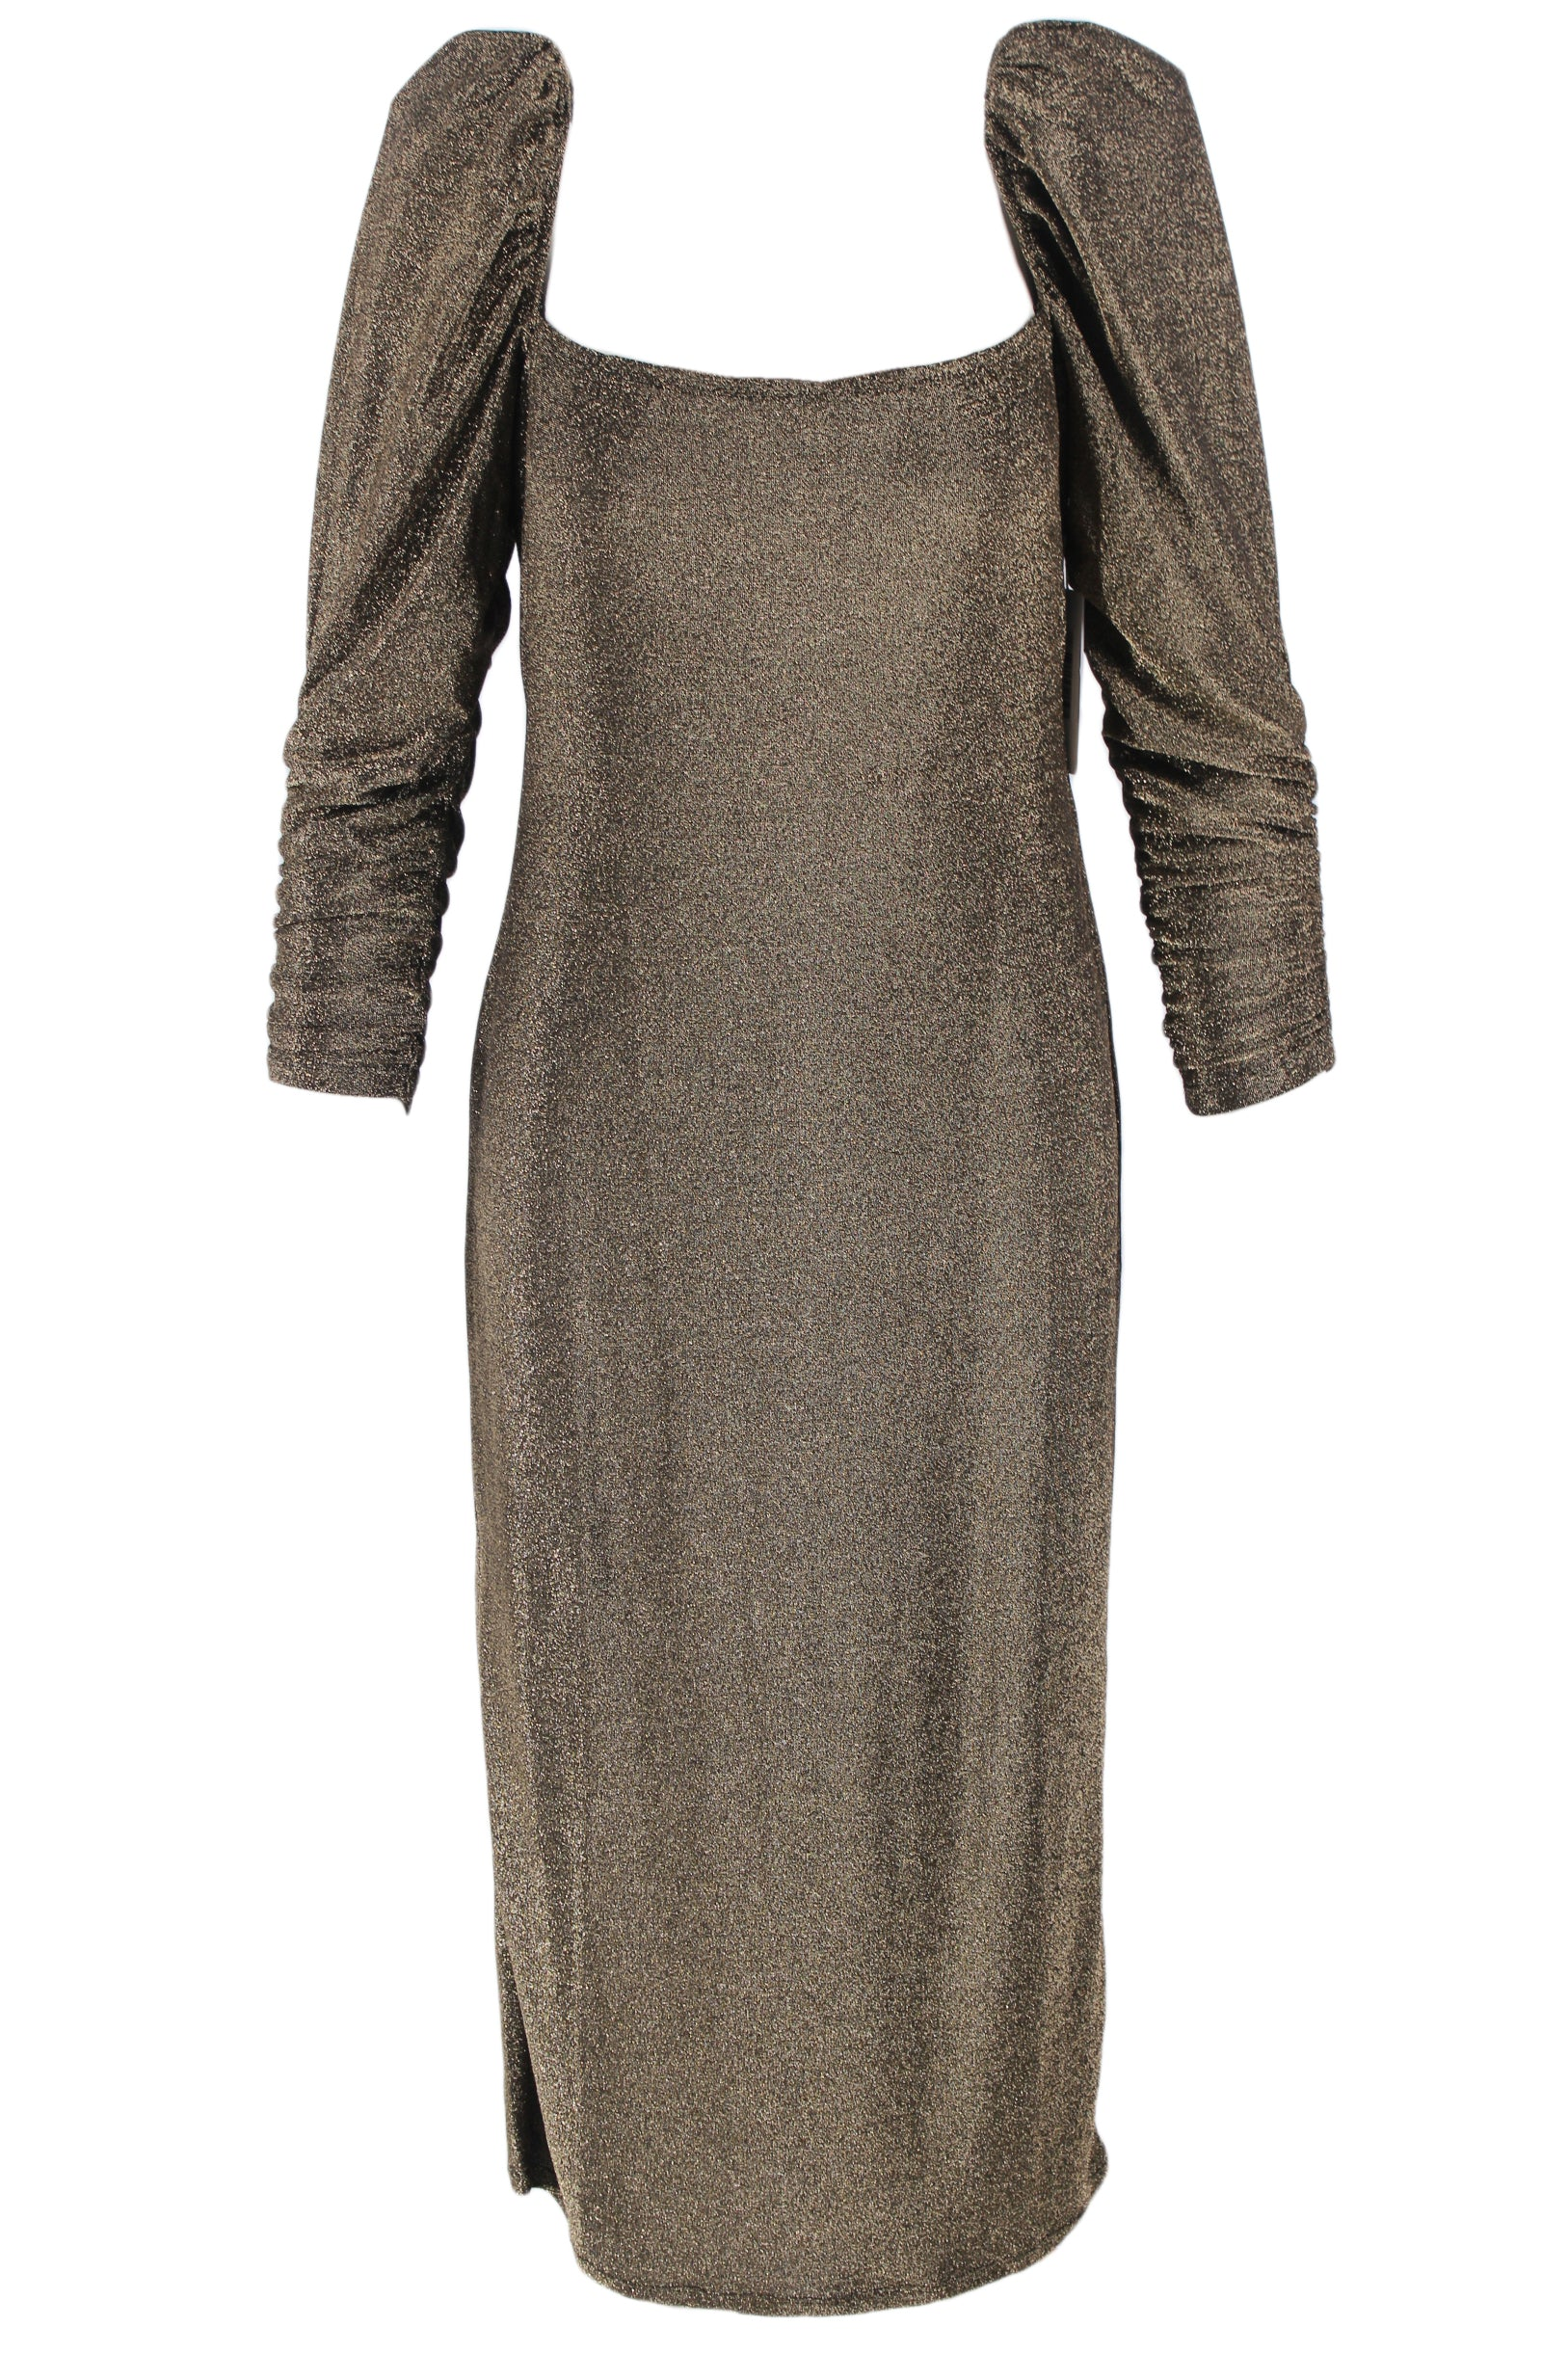 reformation metallic dress. features stretchy metallic exterior, long puff sleeves and square neckline.